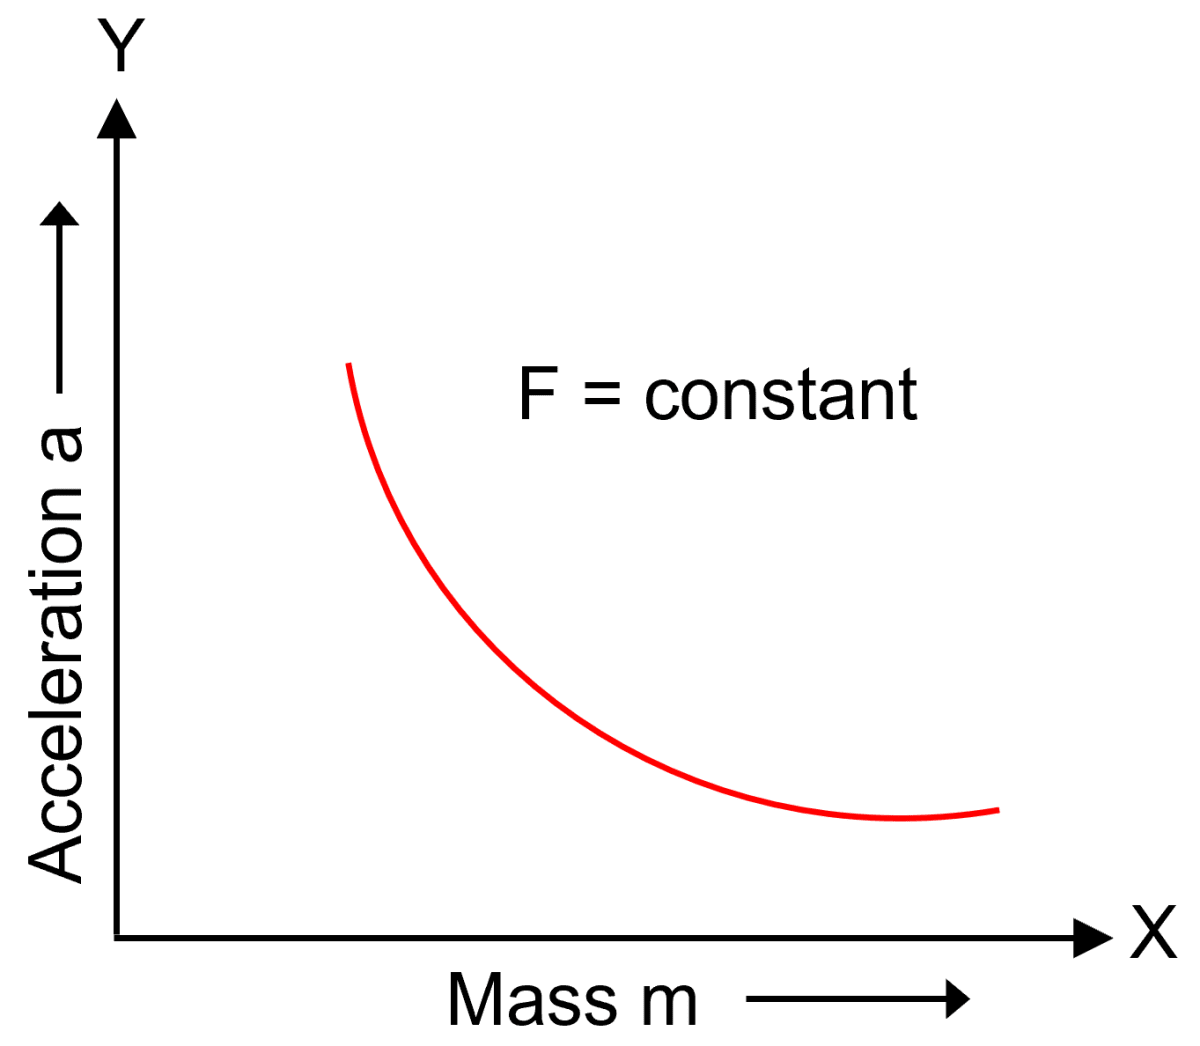 How does the acceleration produced by a given force depend on mass of the body? Draw a graph to show it. Laws of Motion, Concise Physics Solutions ICSE Class 9.